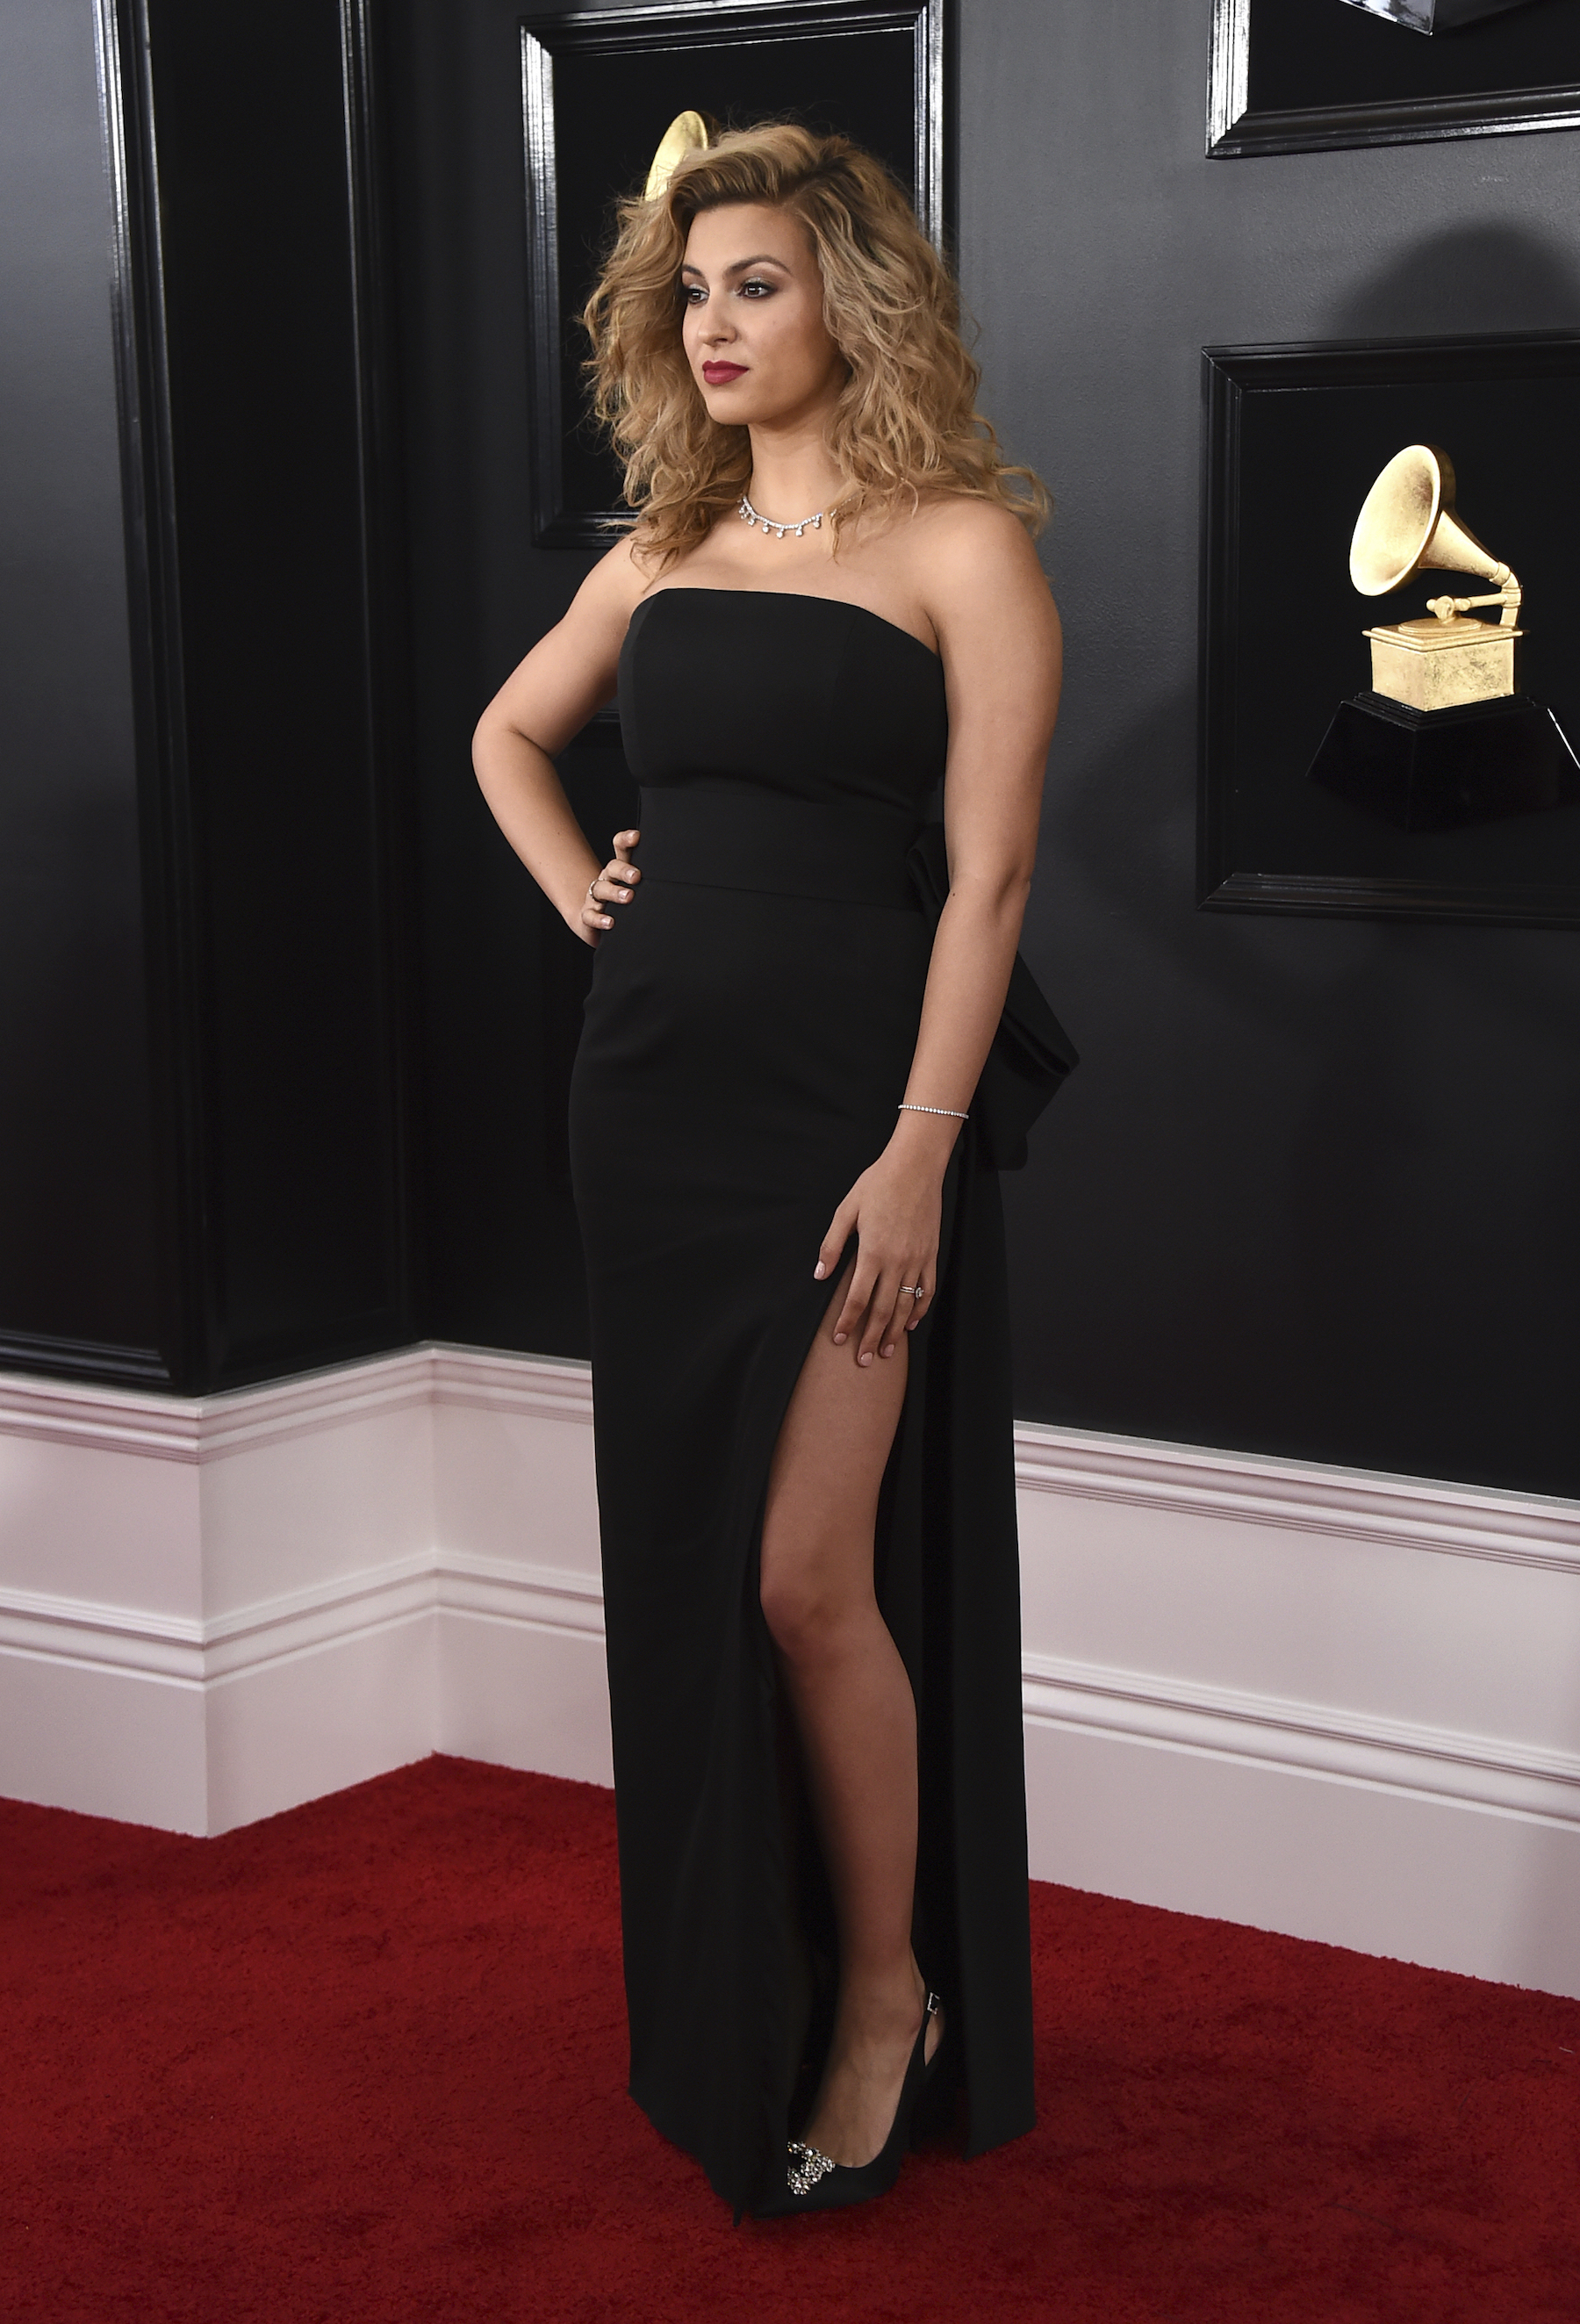 <div class='meta'><div class='origin-logo' data-origin='AP'></div><span class='caption-text' data-credit='Jordan Strauss/Invision/AP'>Tori Kelly arrives at the 61st annual Grammy Awards at the Staples Center on Sunday, Feb. 10, 2019, in Los Angeles.</span></div>